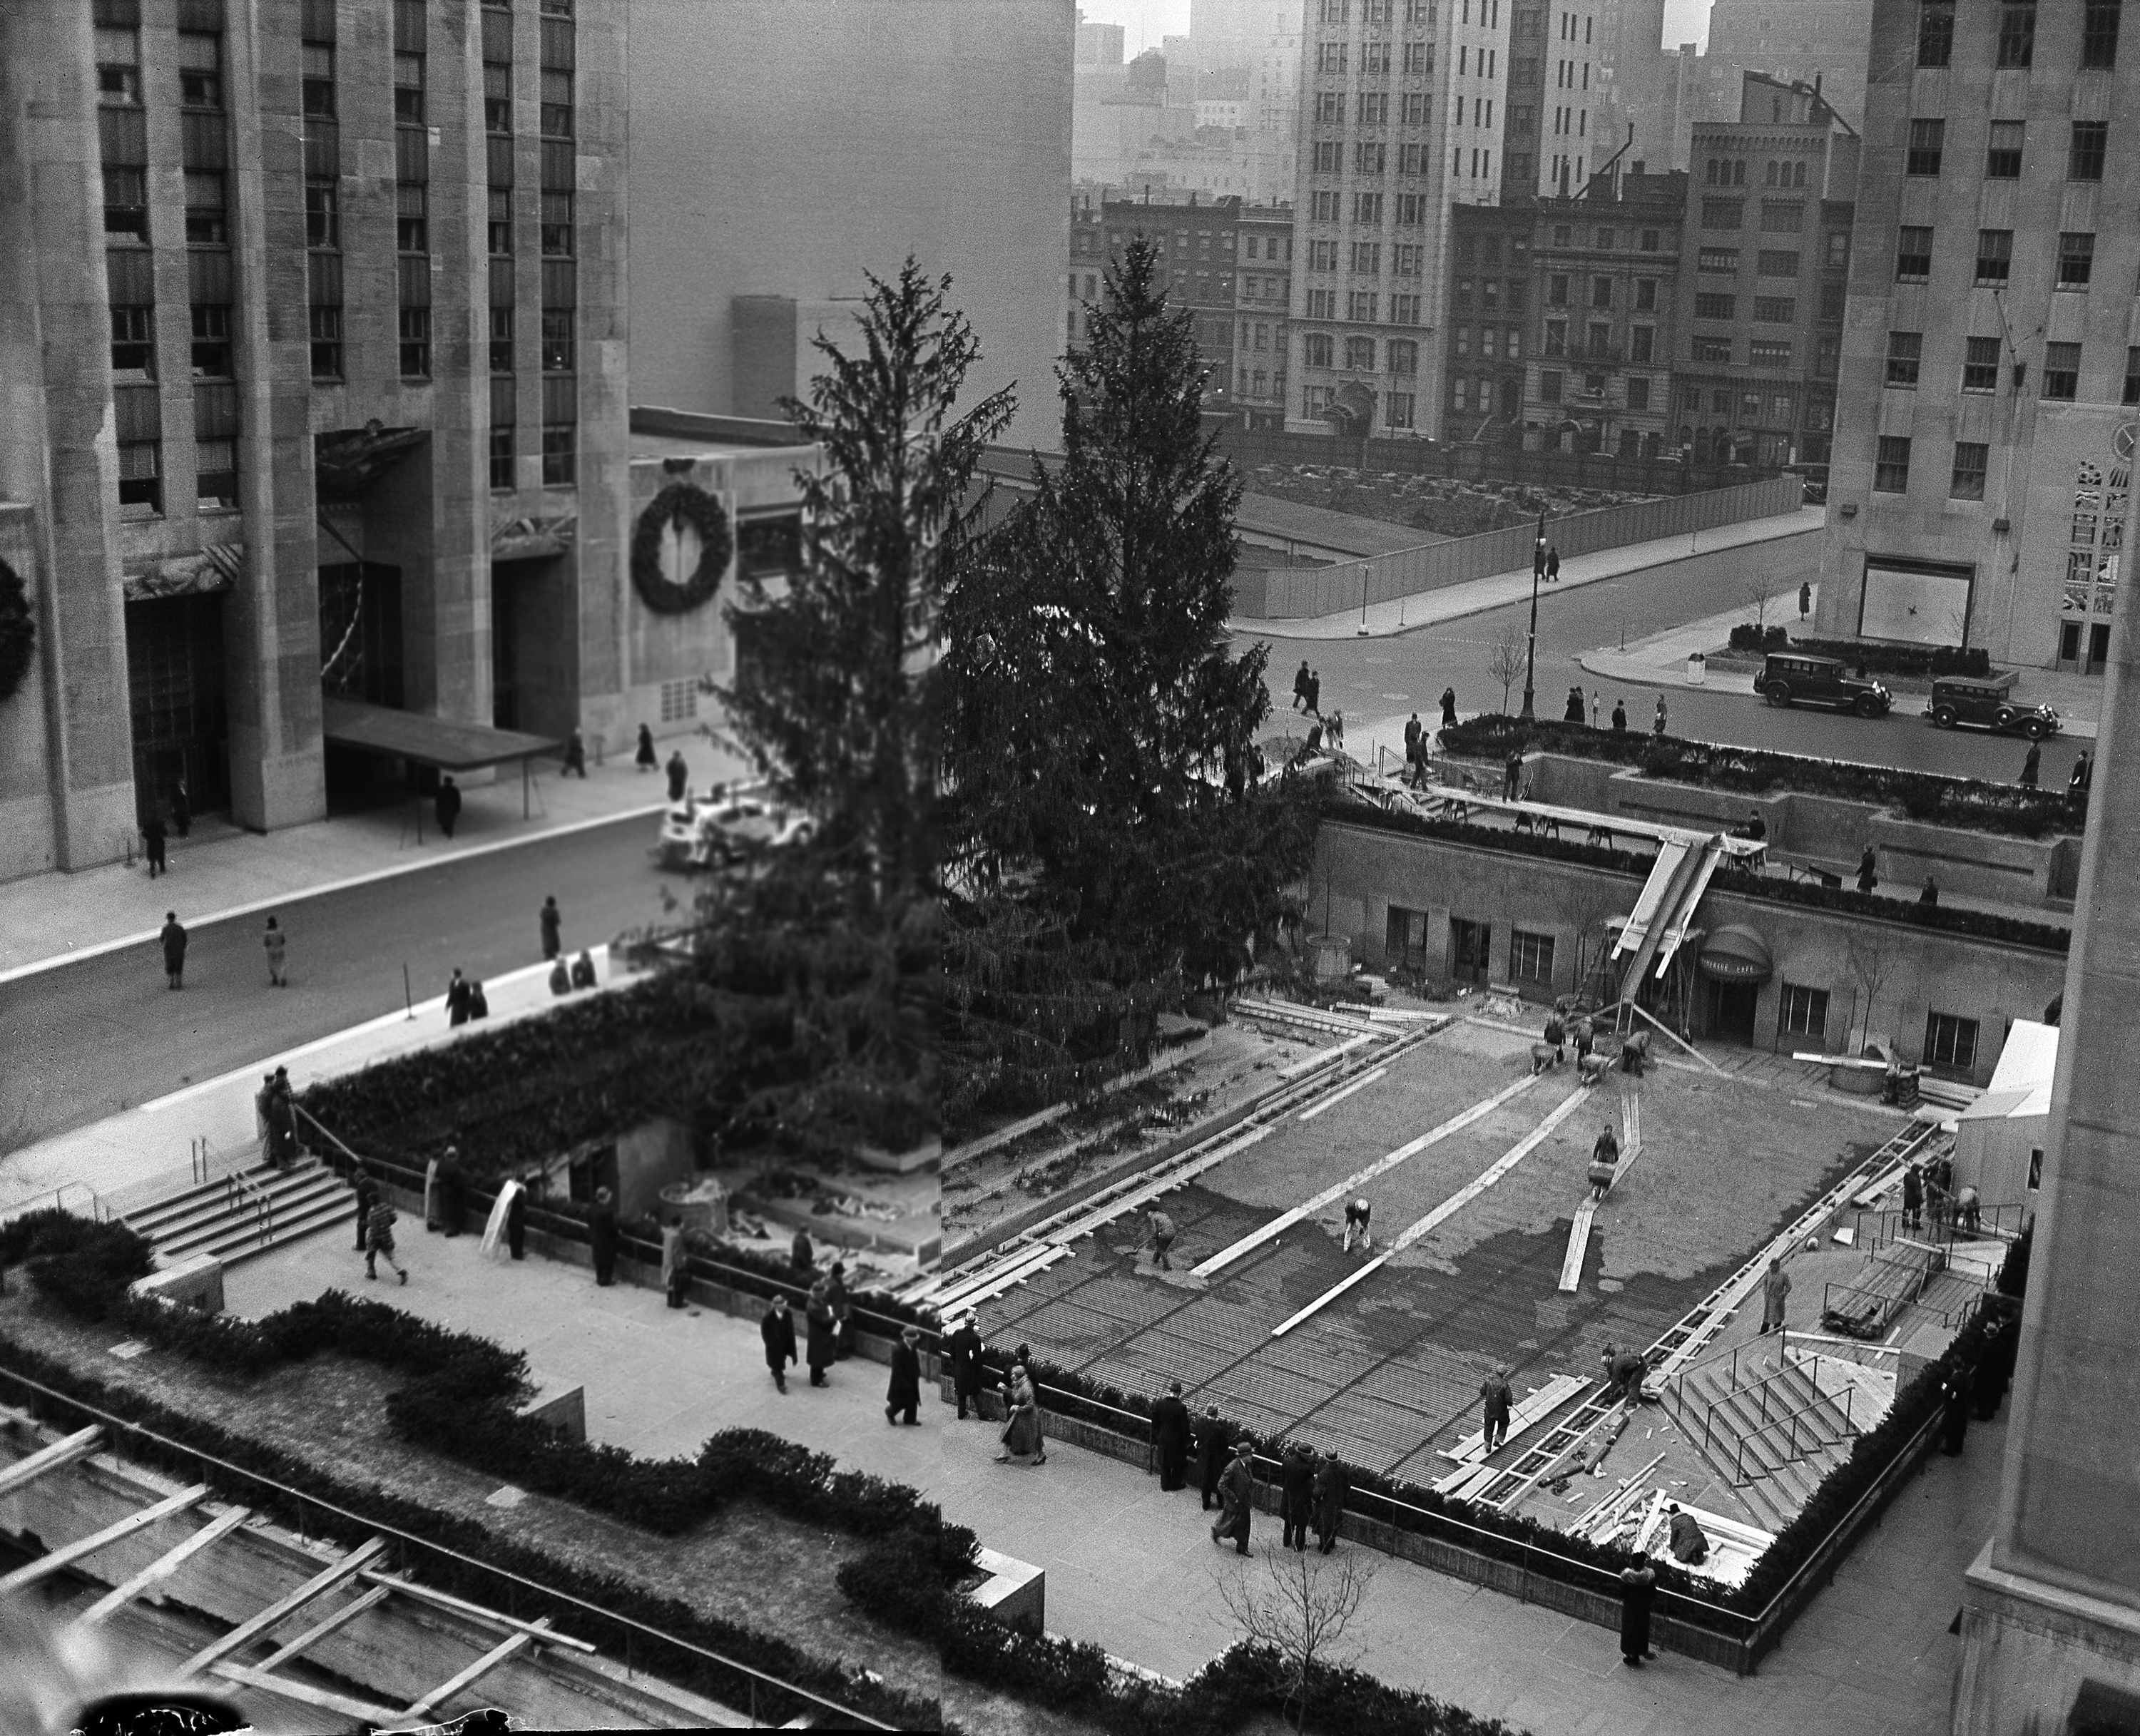 1936 Rockefeller Center Trees, celebrating the opening of the ice skating rink.